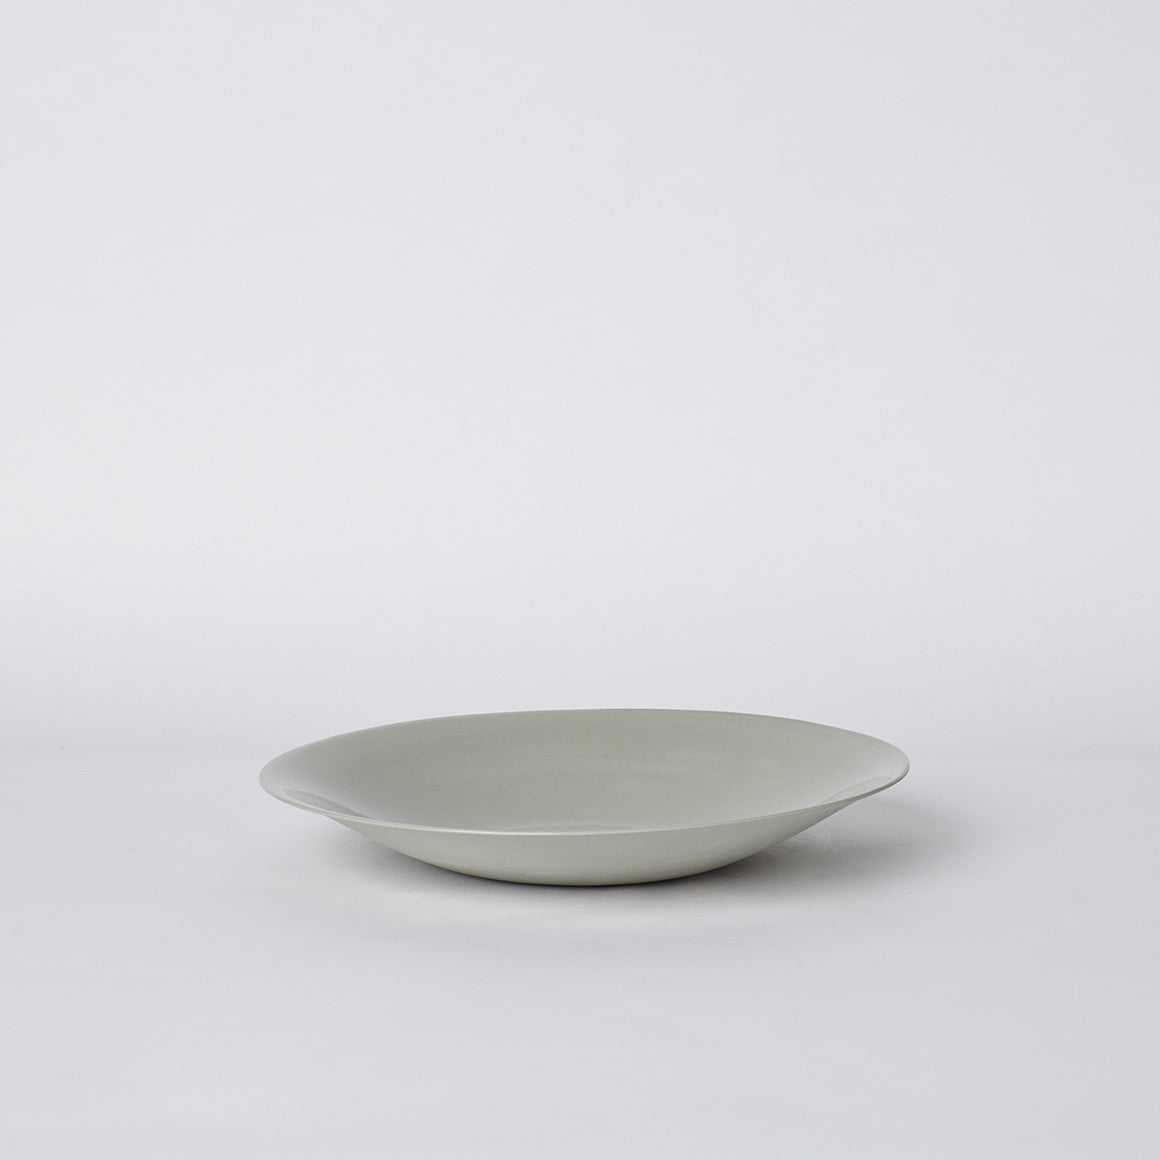 MUD AUSTRALIA-NEST BOWL - Eclectic Cool  - 3